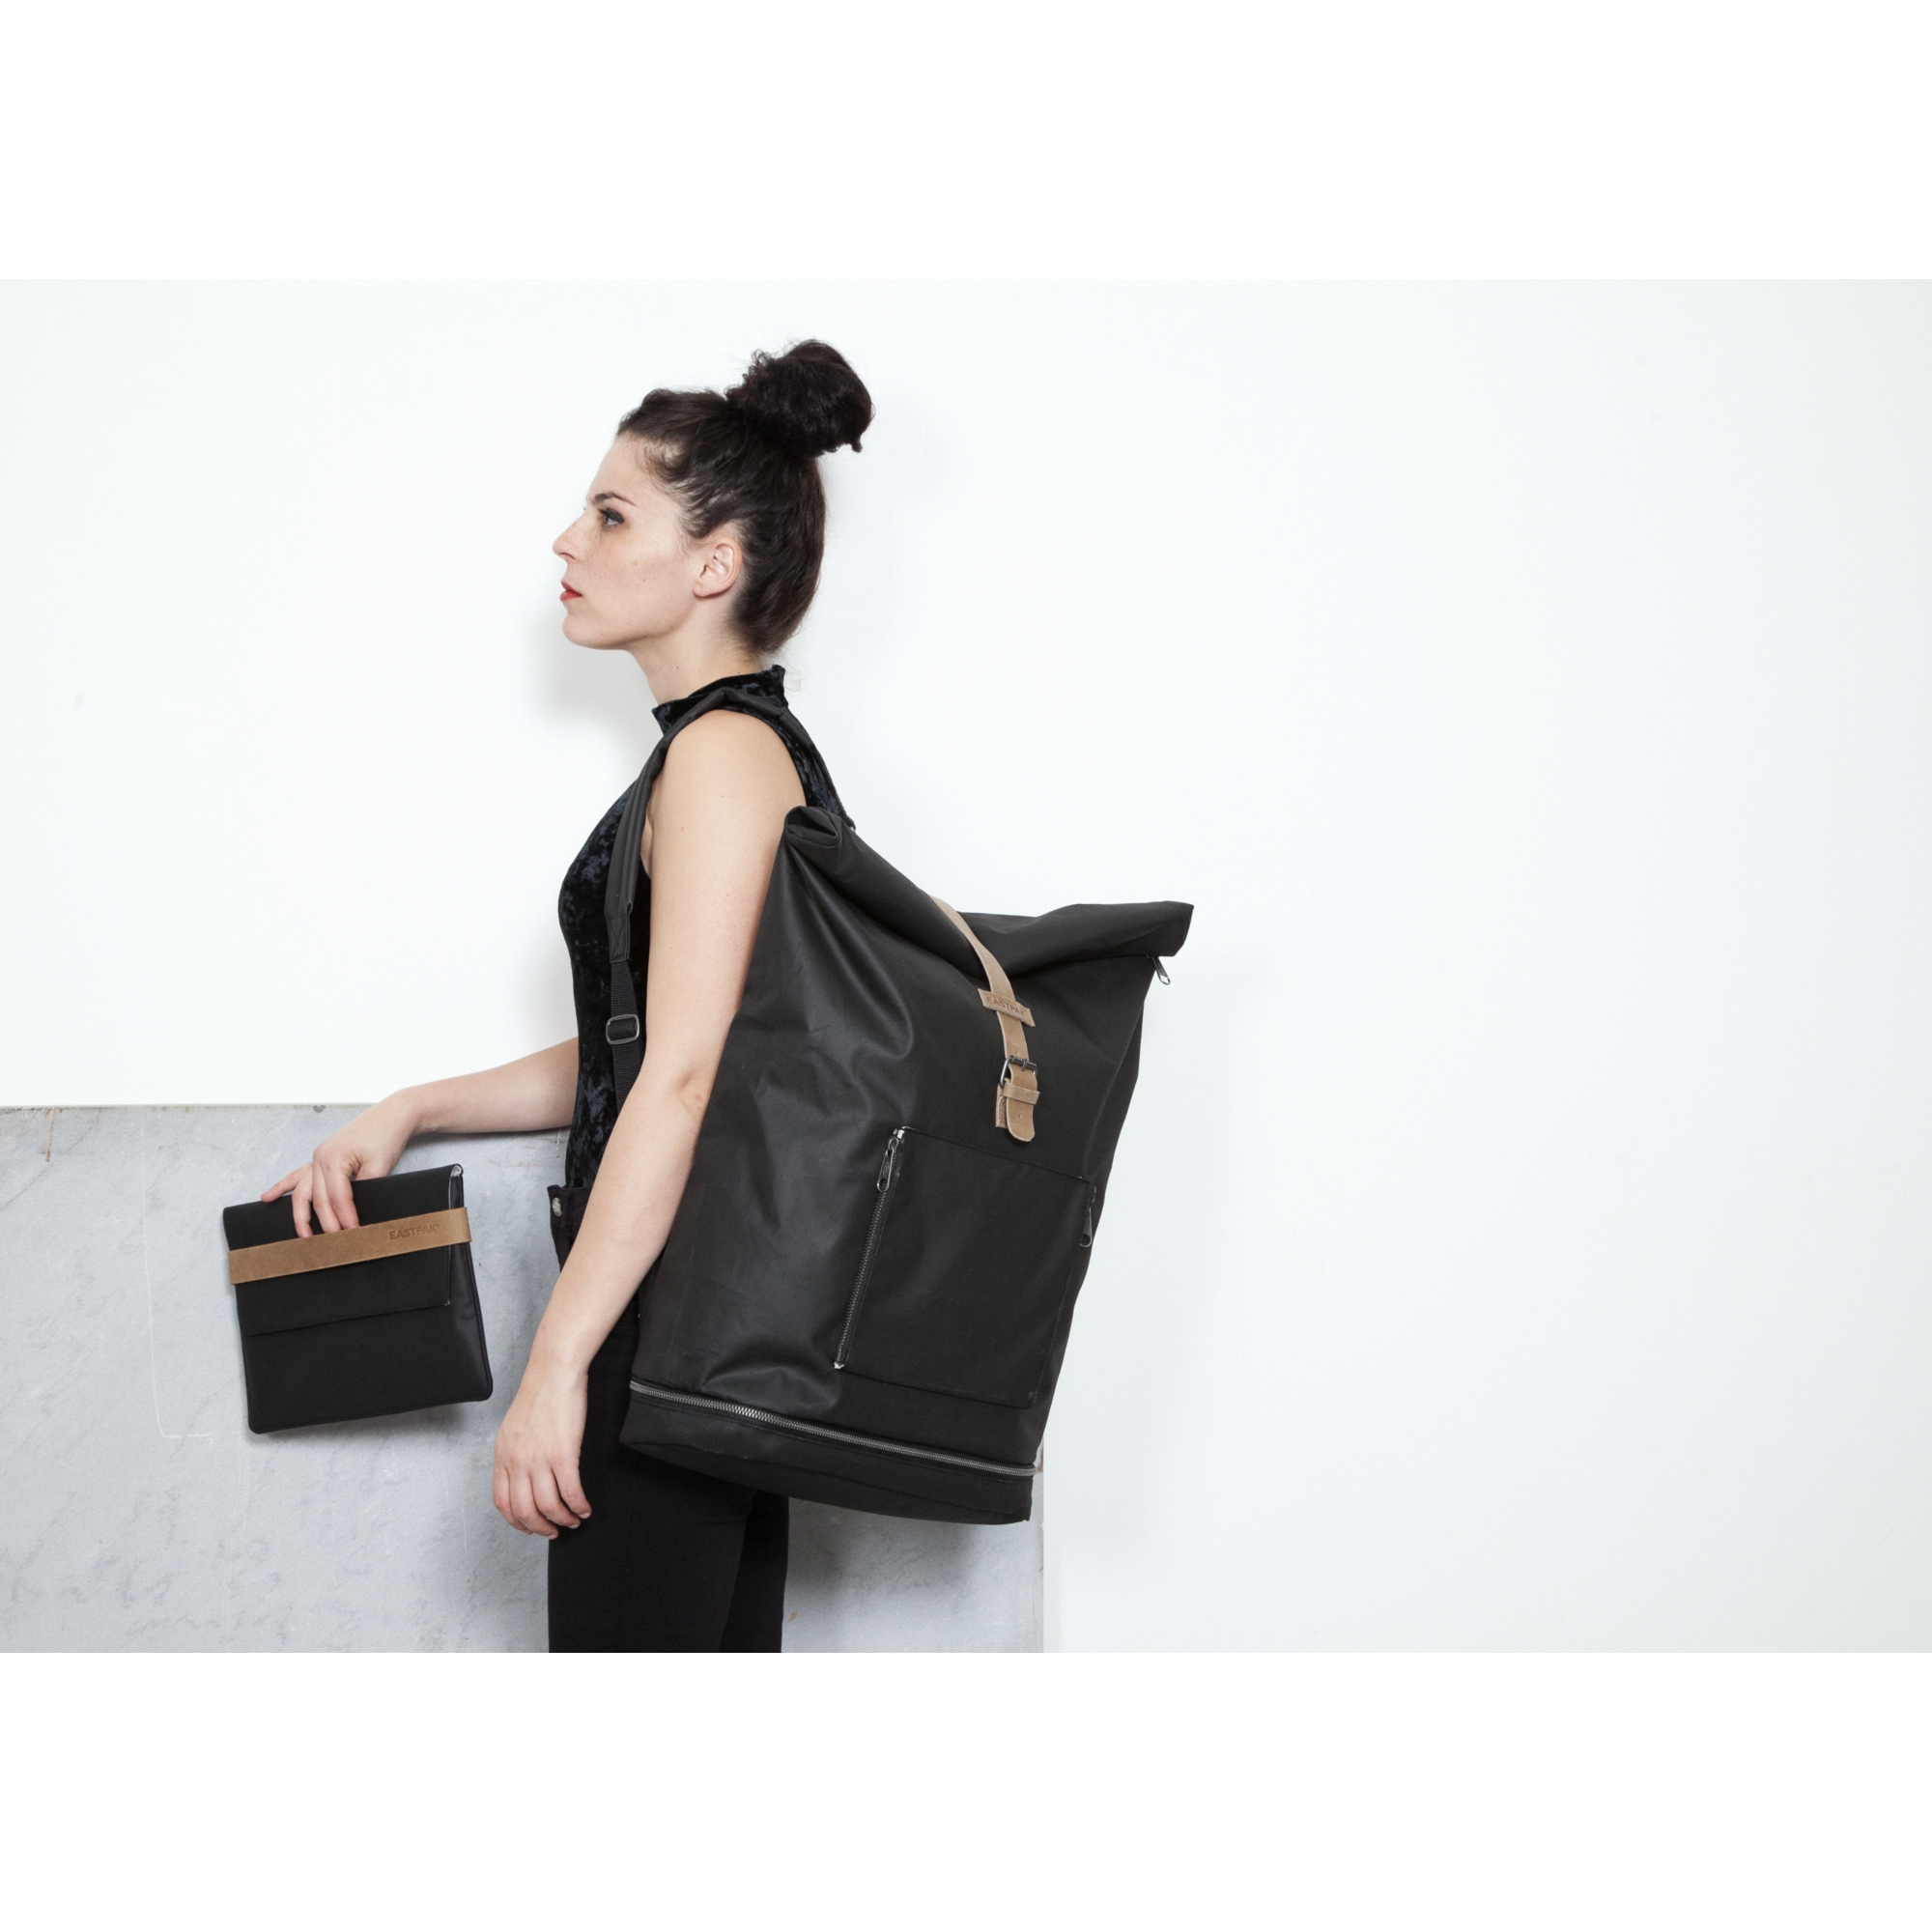 EK62A alt11 AMEN STUDIO   Capsule collection per Eastpak